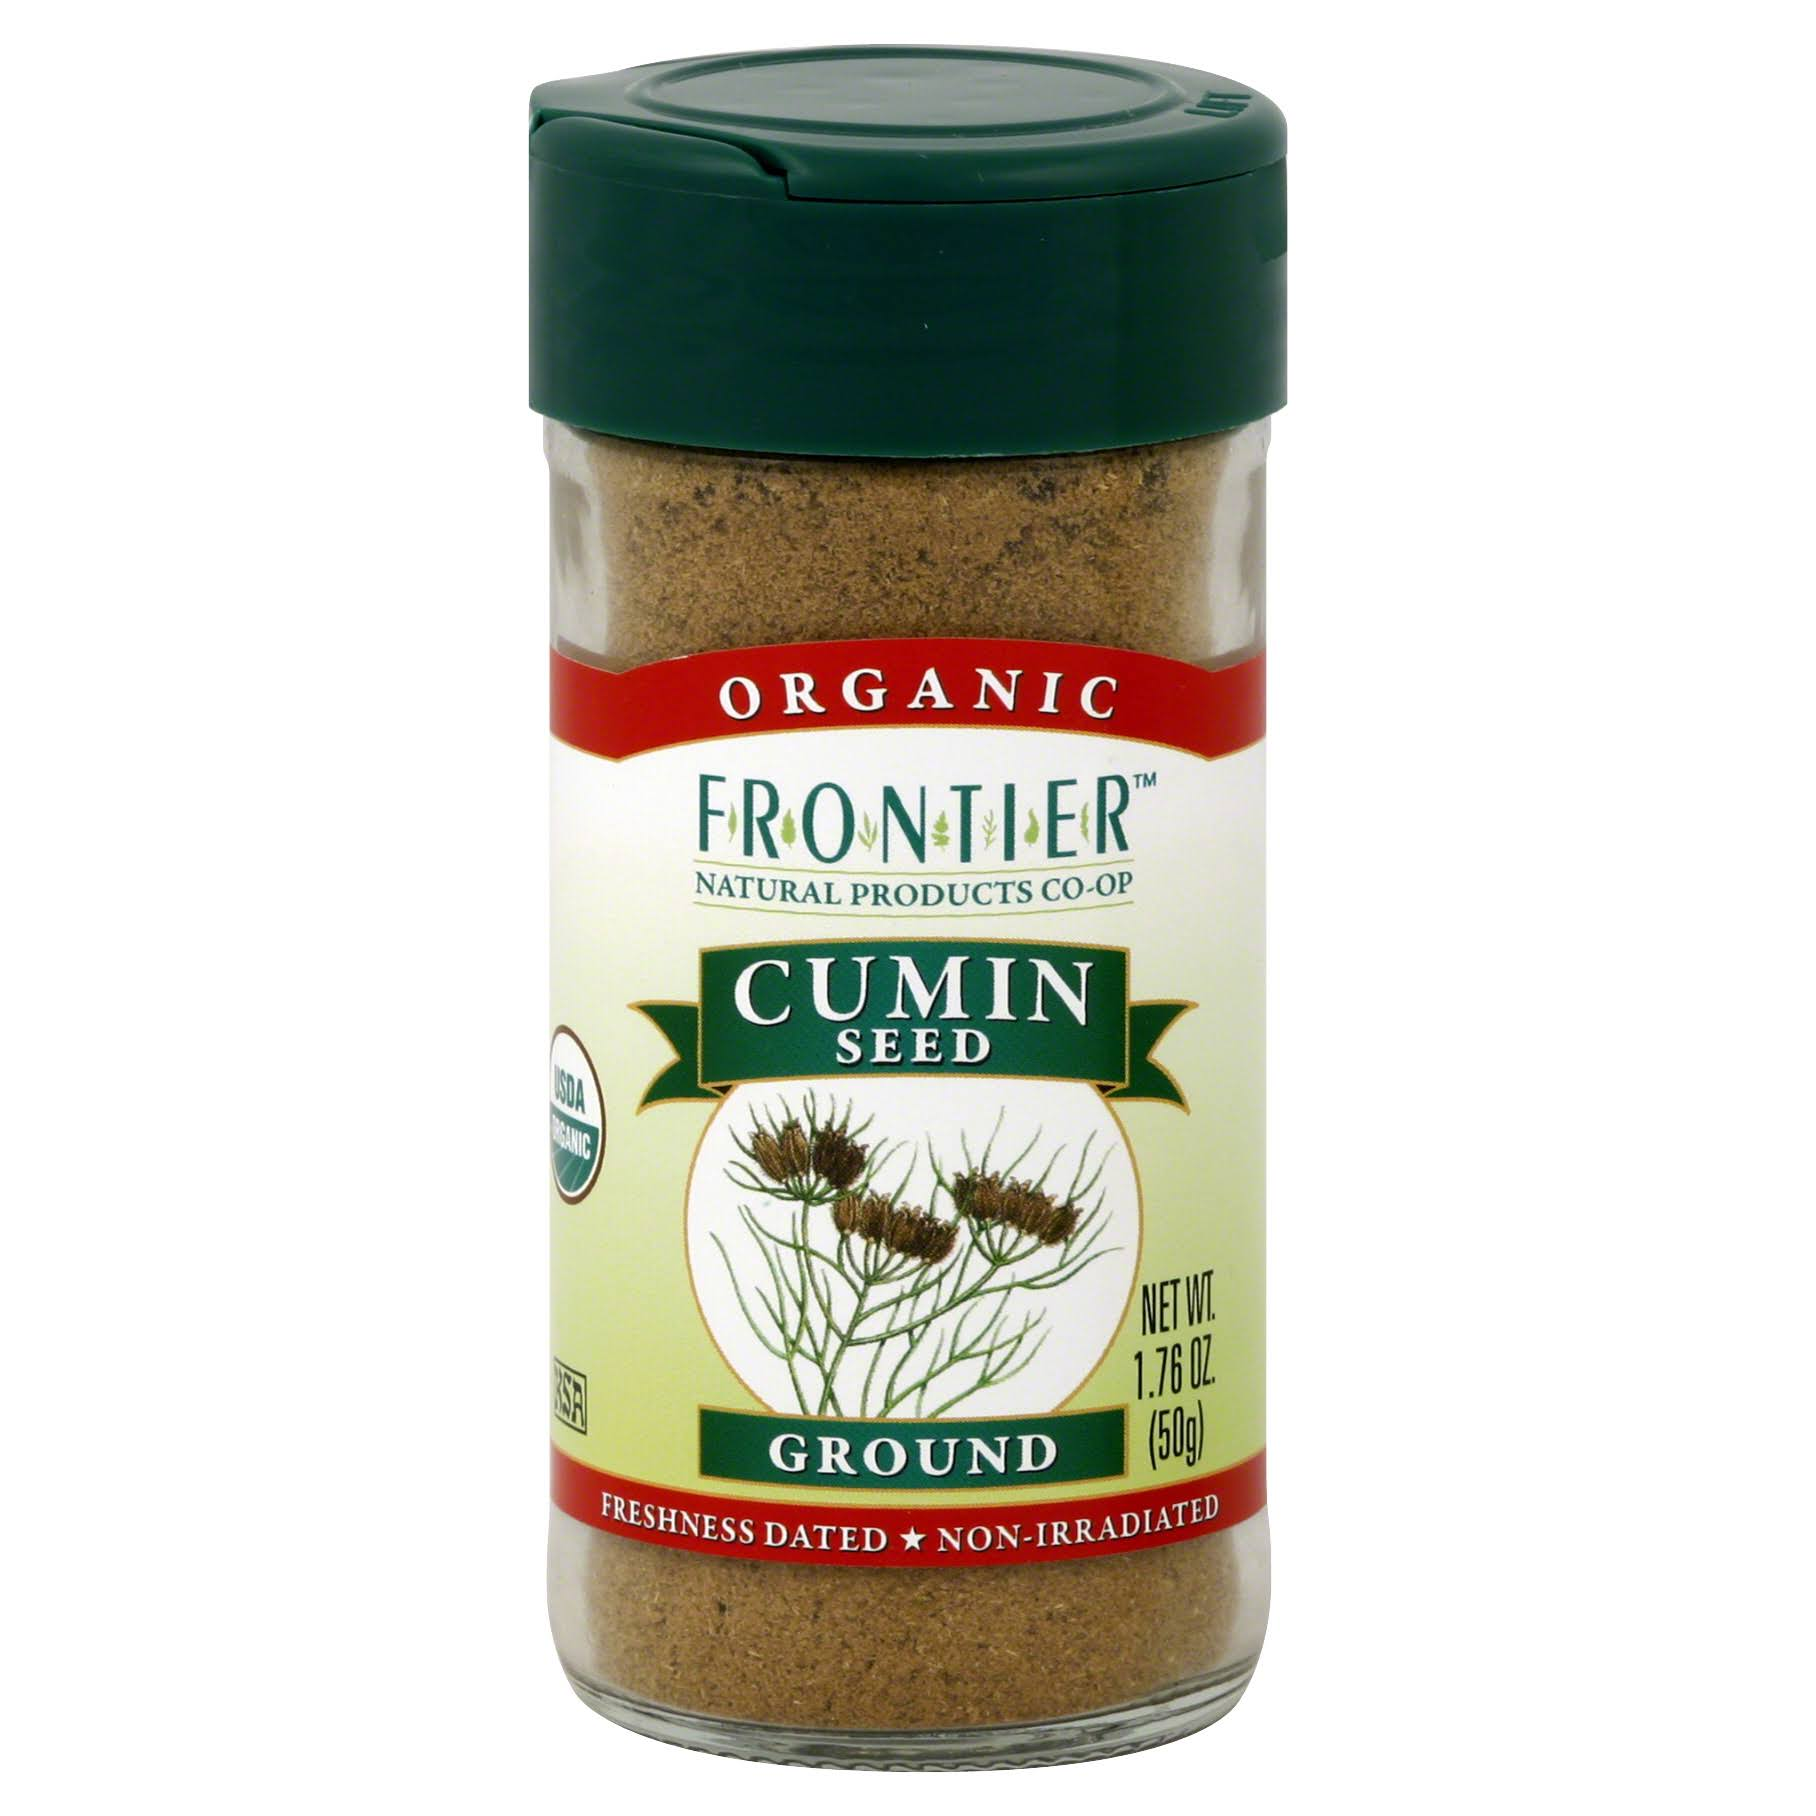 Frontier Cumin Seed Spice - Ground, 56g